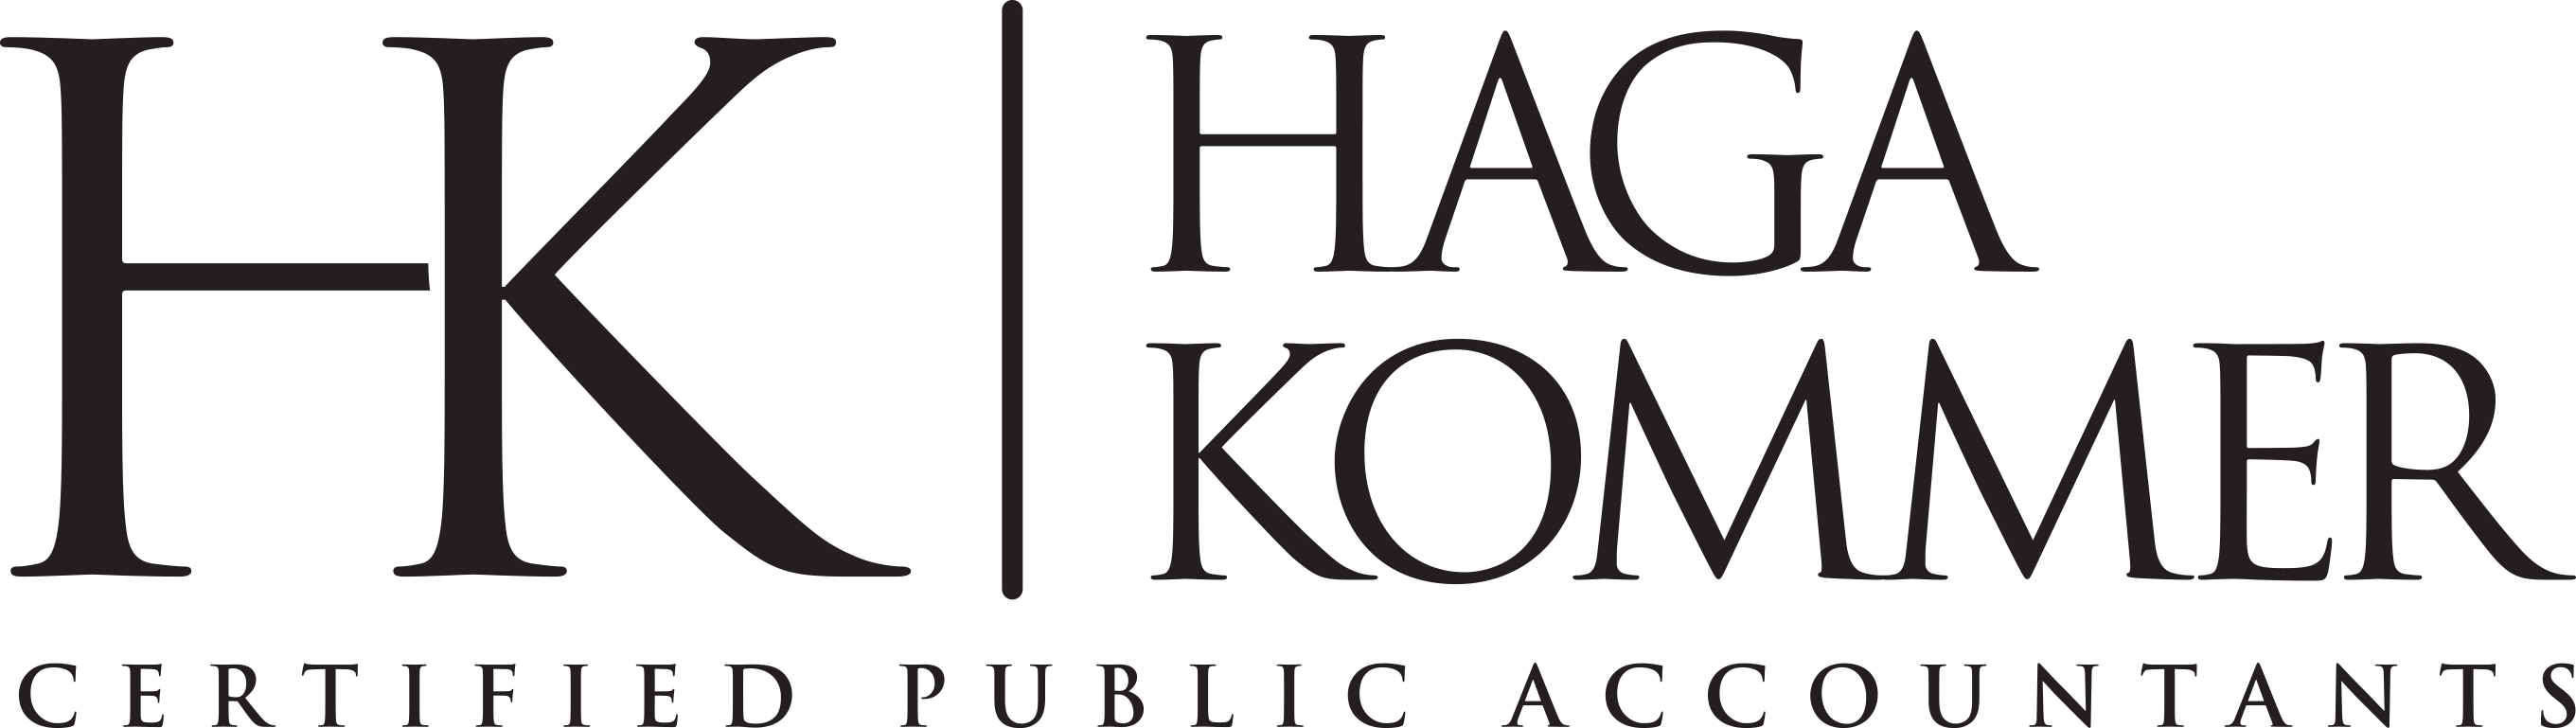 North Dakota CPA Firm | IRS Tax Forms and Publications Page | Haga Kommer, Ltd.